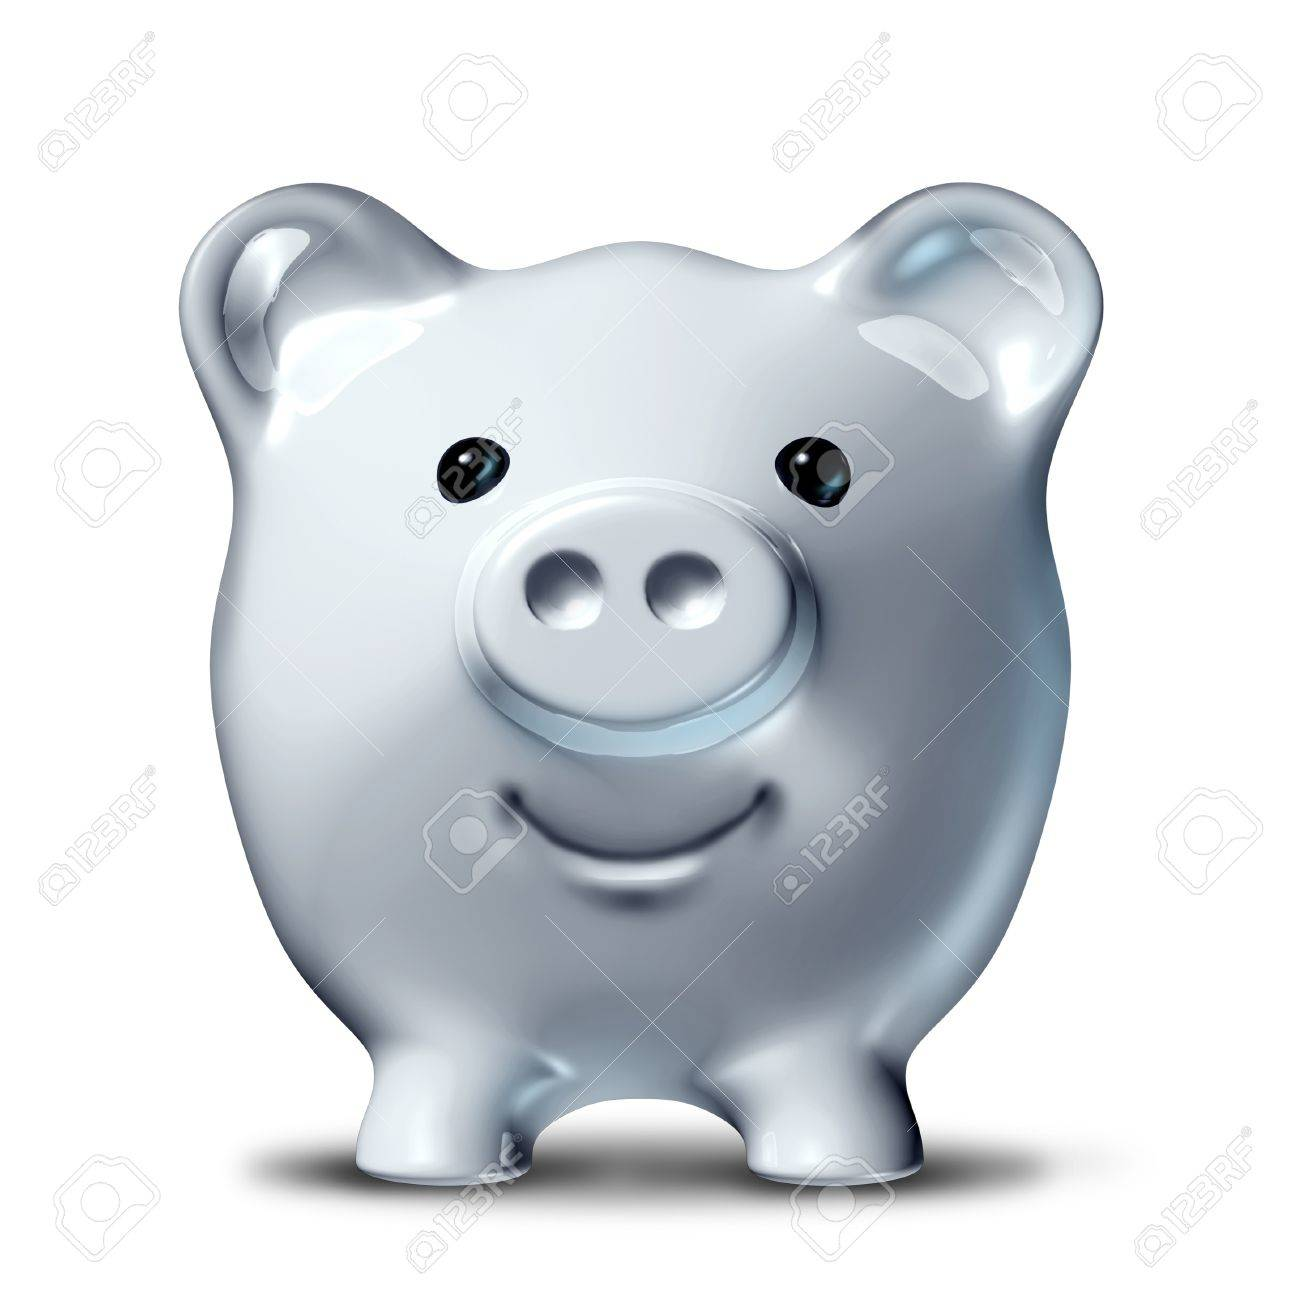 Smiling and happy piggy bank in a front view representing the concept of succesful long term savings and financial planning of investments. Stock Photo - 10892077